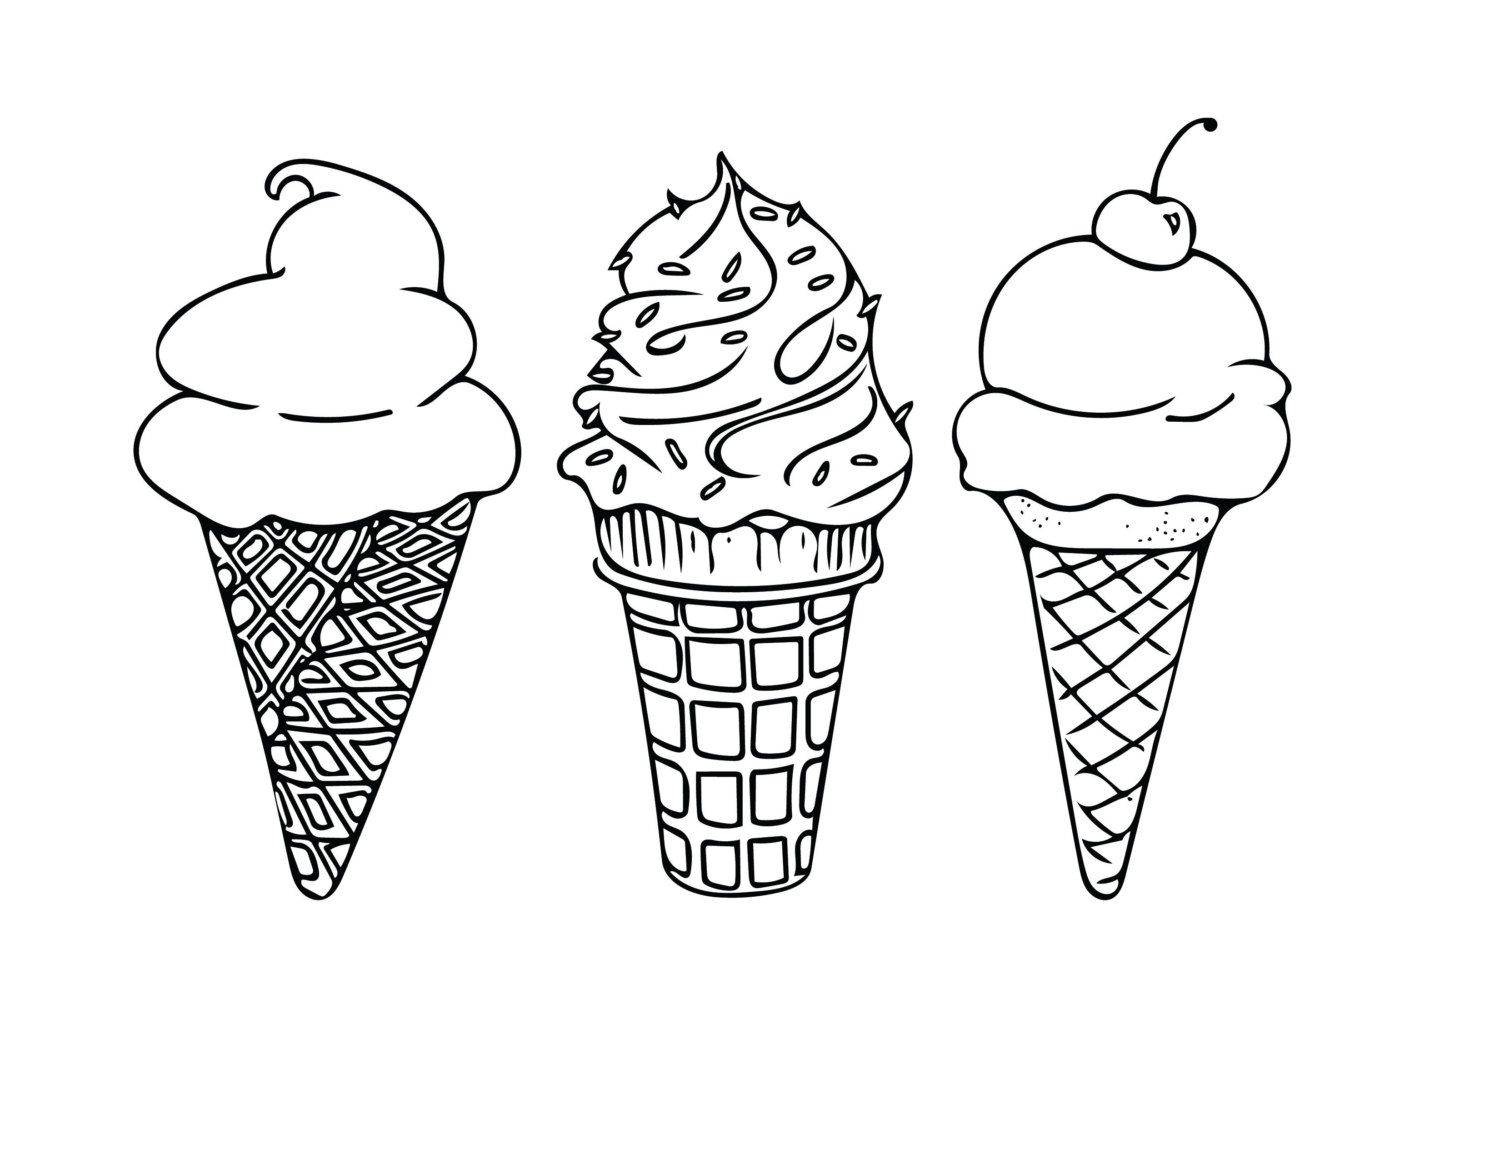 Cool Ice Cream Coloring Pages Ideas Free Coloring Sheets Ice Cream Coloring Pages Free Coloring Pages Ice Cream Tattoo